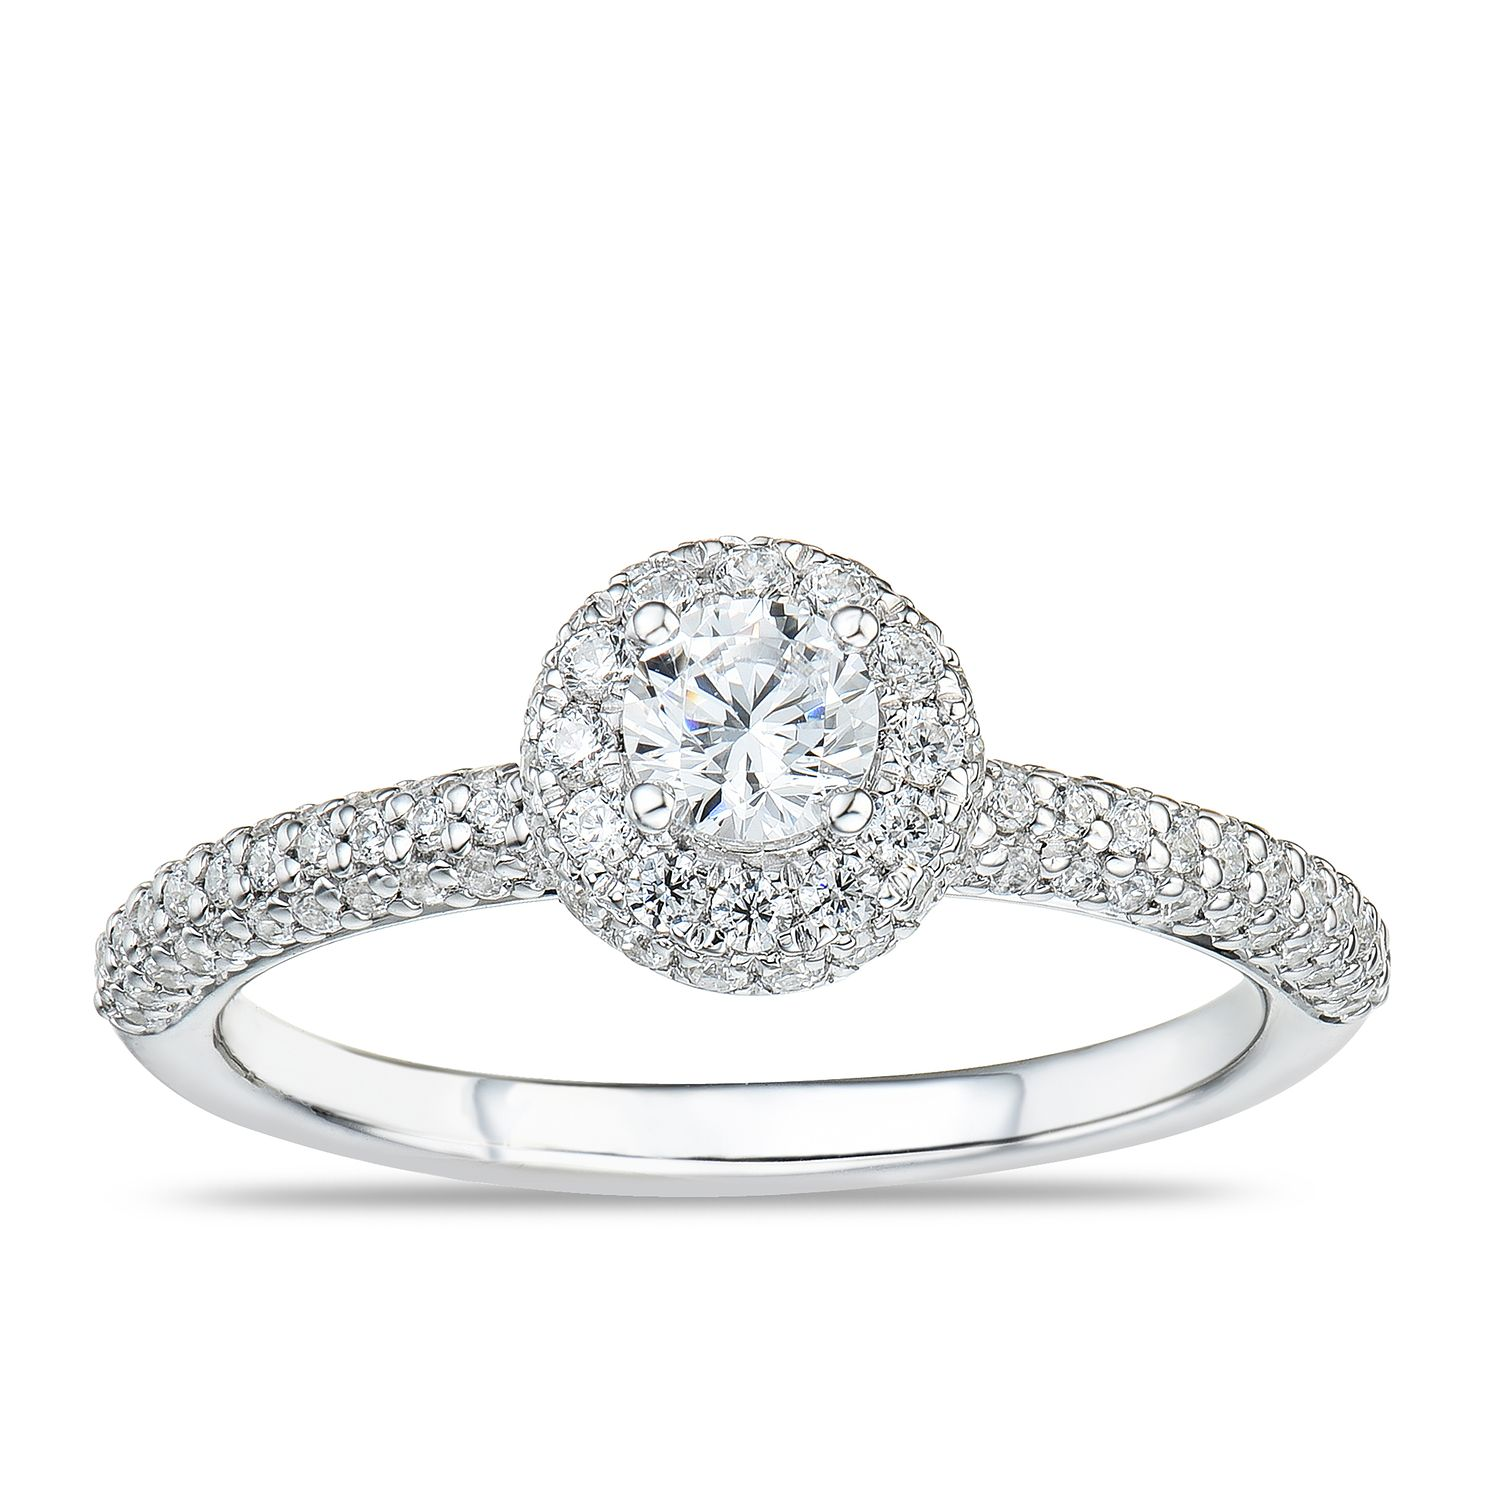 Tolkowsky 18ct White Gold 3/4ct Diamond Pave Halo Ring - Product number 4176669